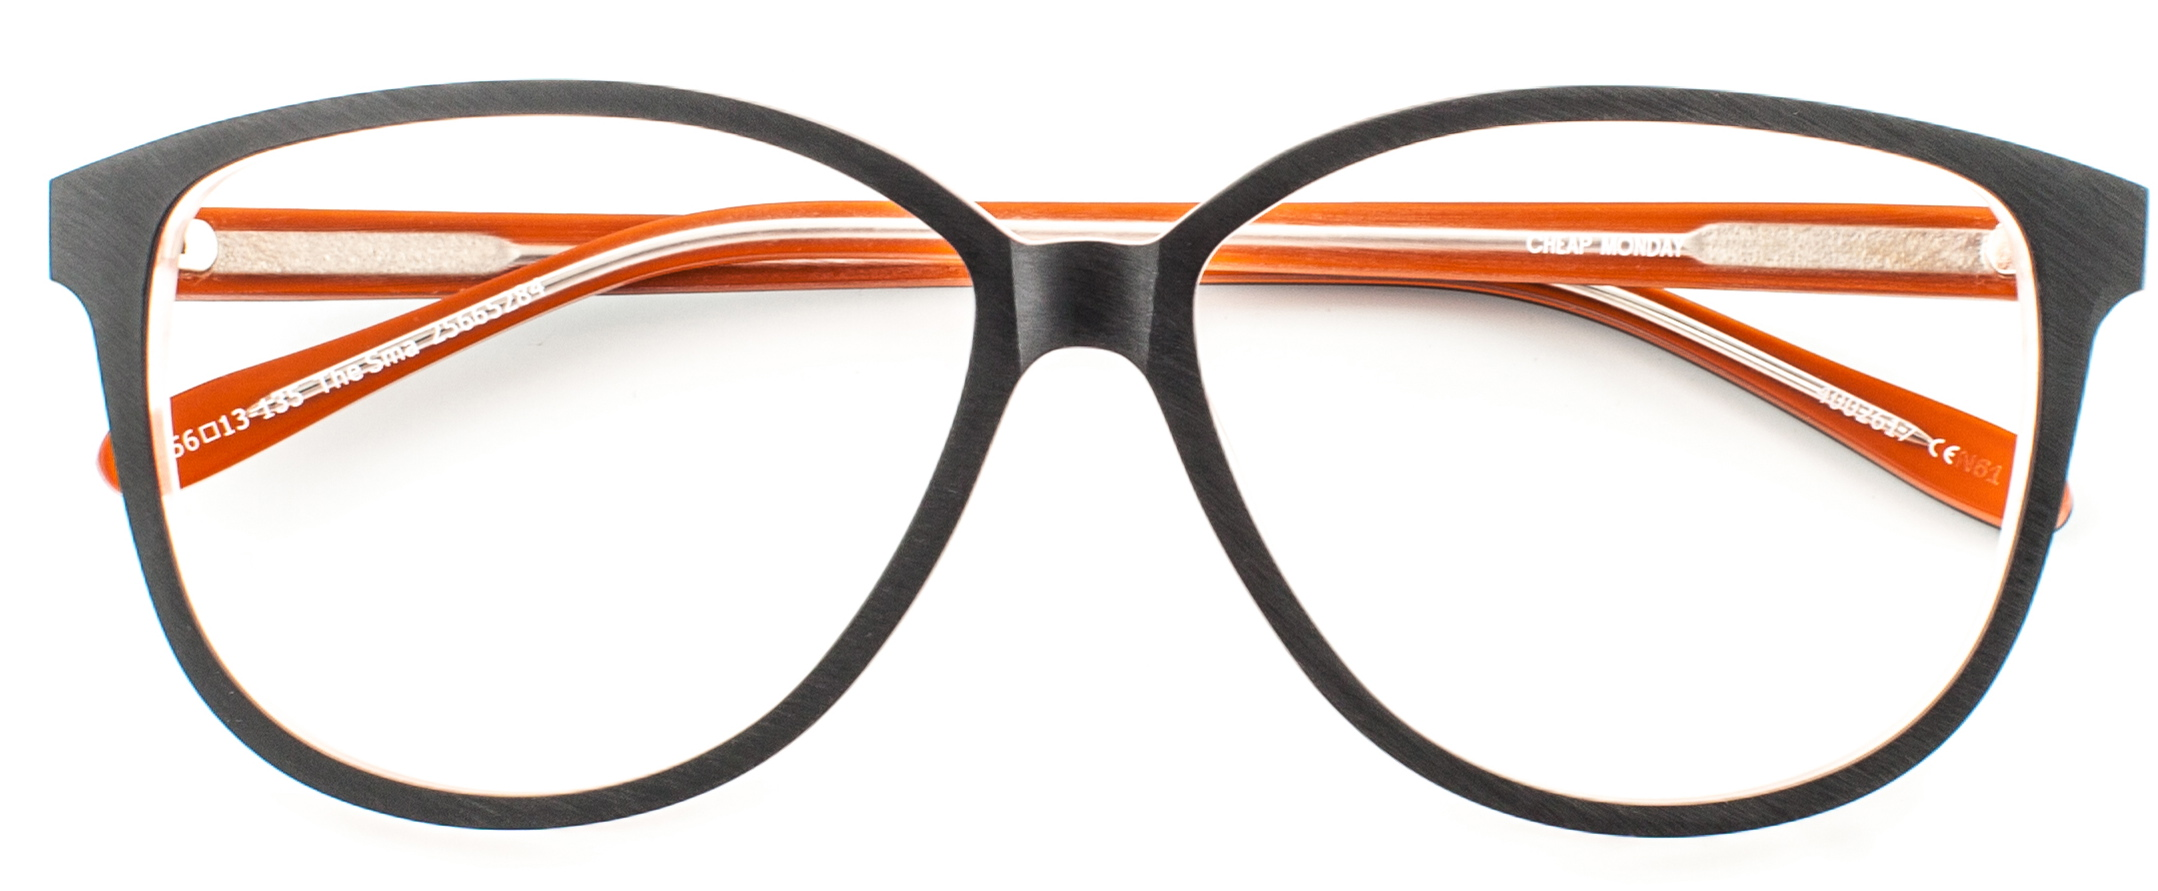 New glasses? Specsavers SS14 fashion frames launches | So Many ...